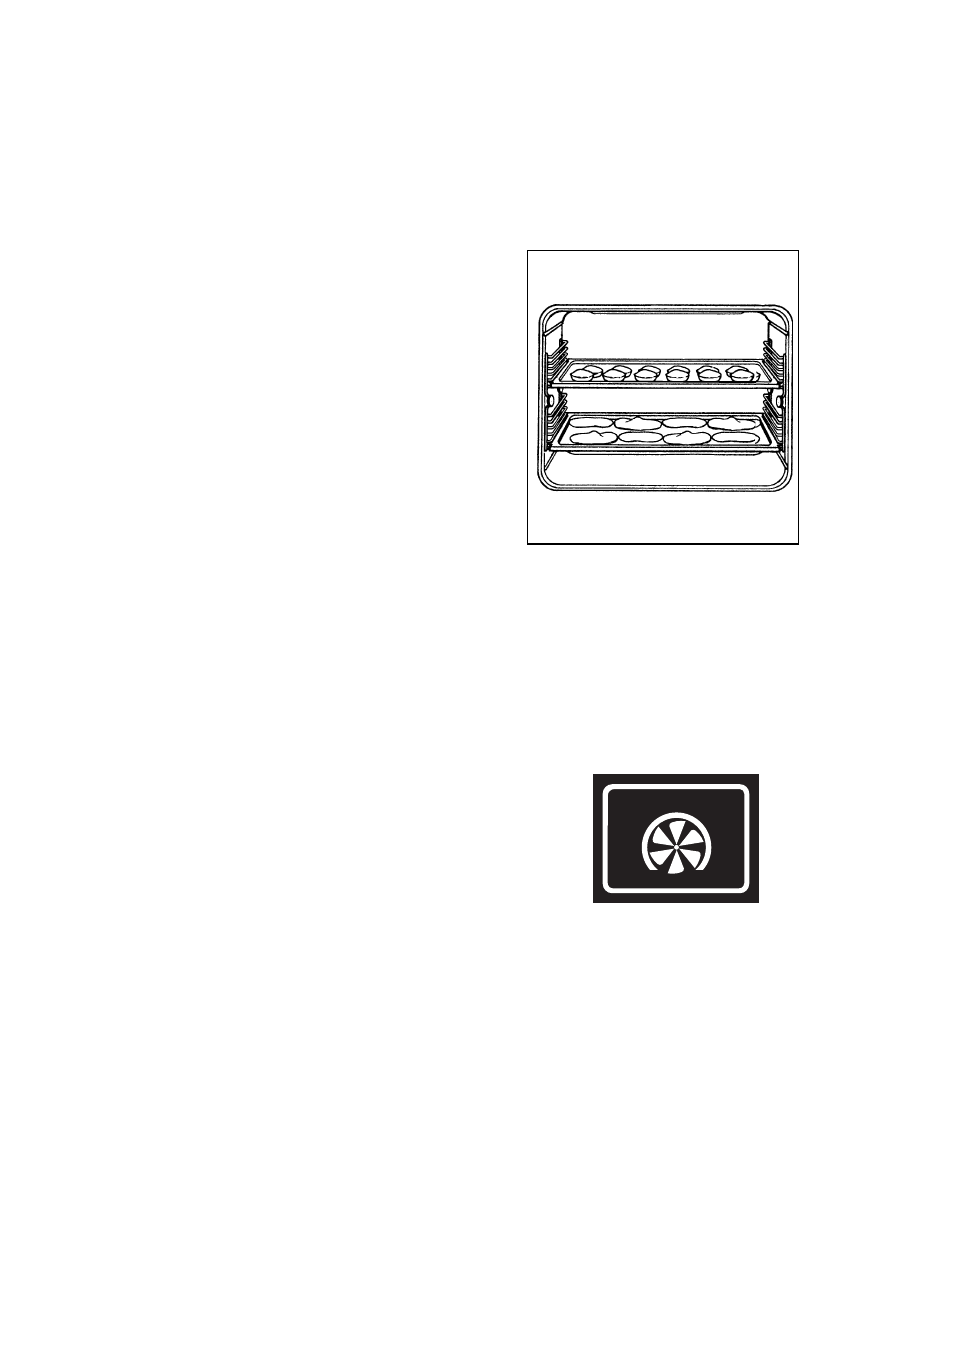 the fan oven main oven only zanussi zdm 891 user manual page rh manualsdir com zanussi double oven user manual zanussi oven instruction manuals